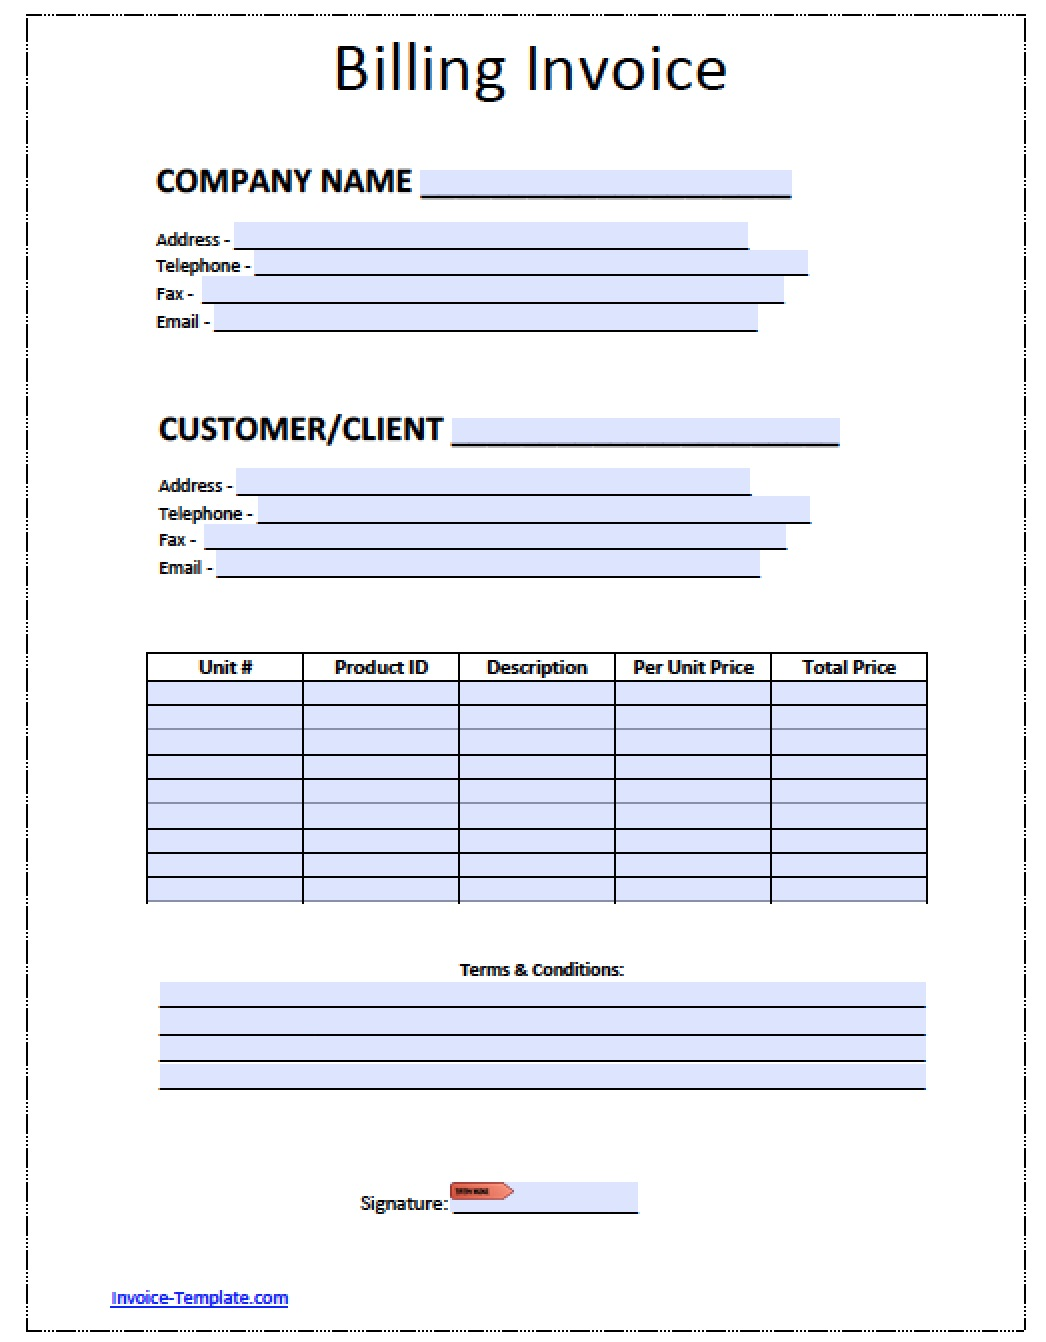 Carsforlessus  Gorgeous Billing Invoice Invoices Faq U Cloudflare Support Billing  With Hot Free Billing Invoice Template  Excel  Pdf  Word Doc  Billing With Awesome  Honda Accord Invoice Also How To Submit An Invoice In Addition Send Invoices Online And Canadian Customs Invoice Instructions As Well As Invoice Pricing Cars Additionally Dummy Invoice Template From Happytomco With Carsforlessus  Hot Billing Invoice Invoices Faq U Cloudflare Support Billing  With Awesome Free Billing Invoice Template  Excel  Pdf  Word Doc  Billing And Gorgeous  Honda Accord Invoice Also How To Submit An Invoice In Addition Send Invoices Online From Happytomco